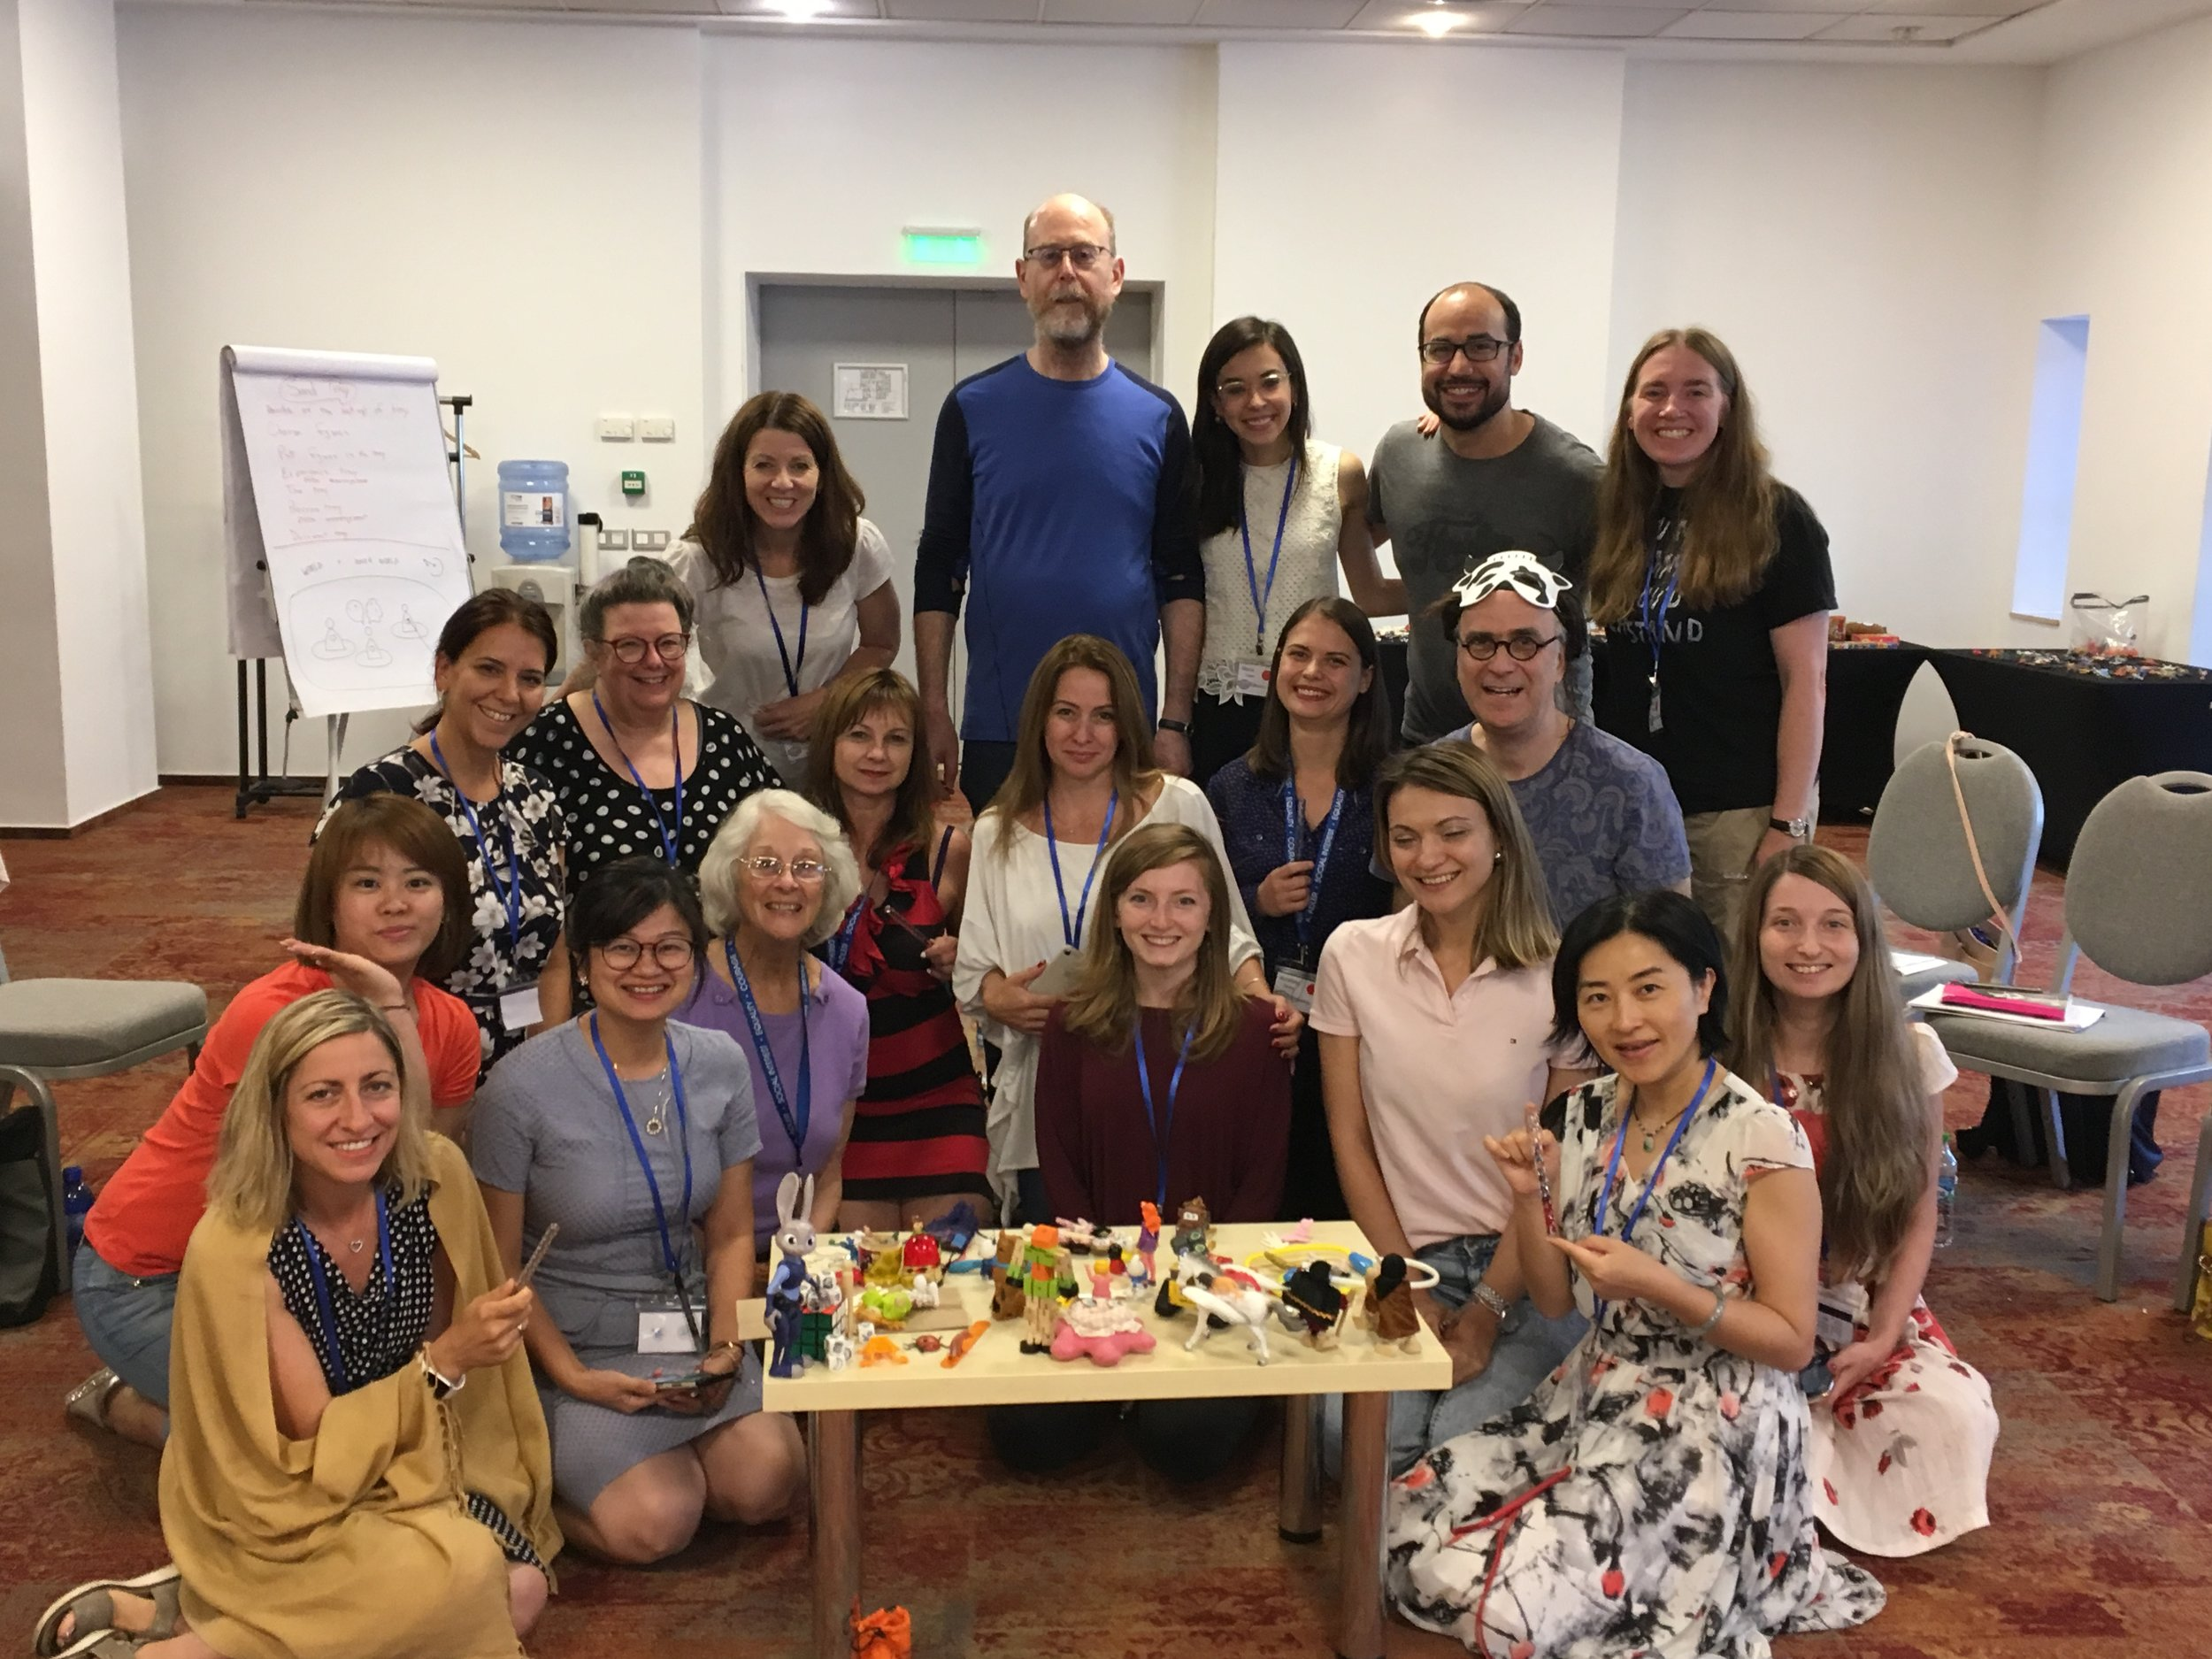 Adlerian Play Therapy with Terry Kottman, ICASSI 2019